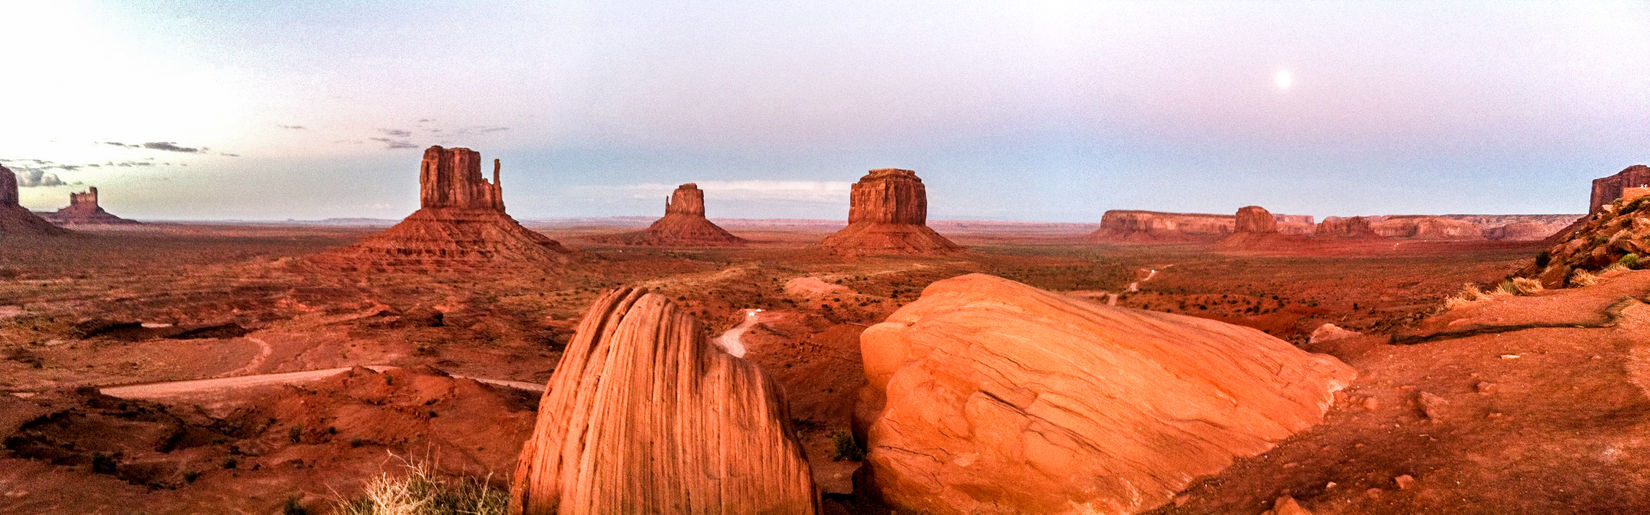 Monument Valley, USA IPhone4 Pano